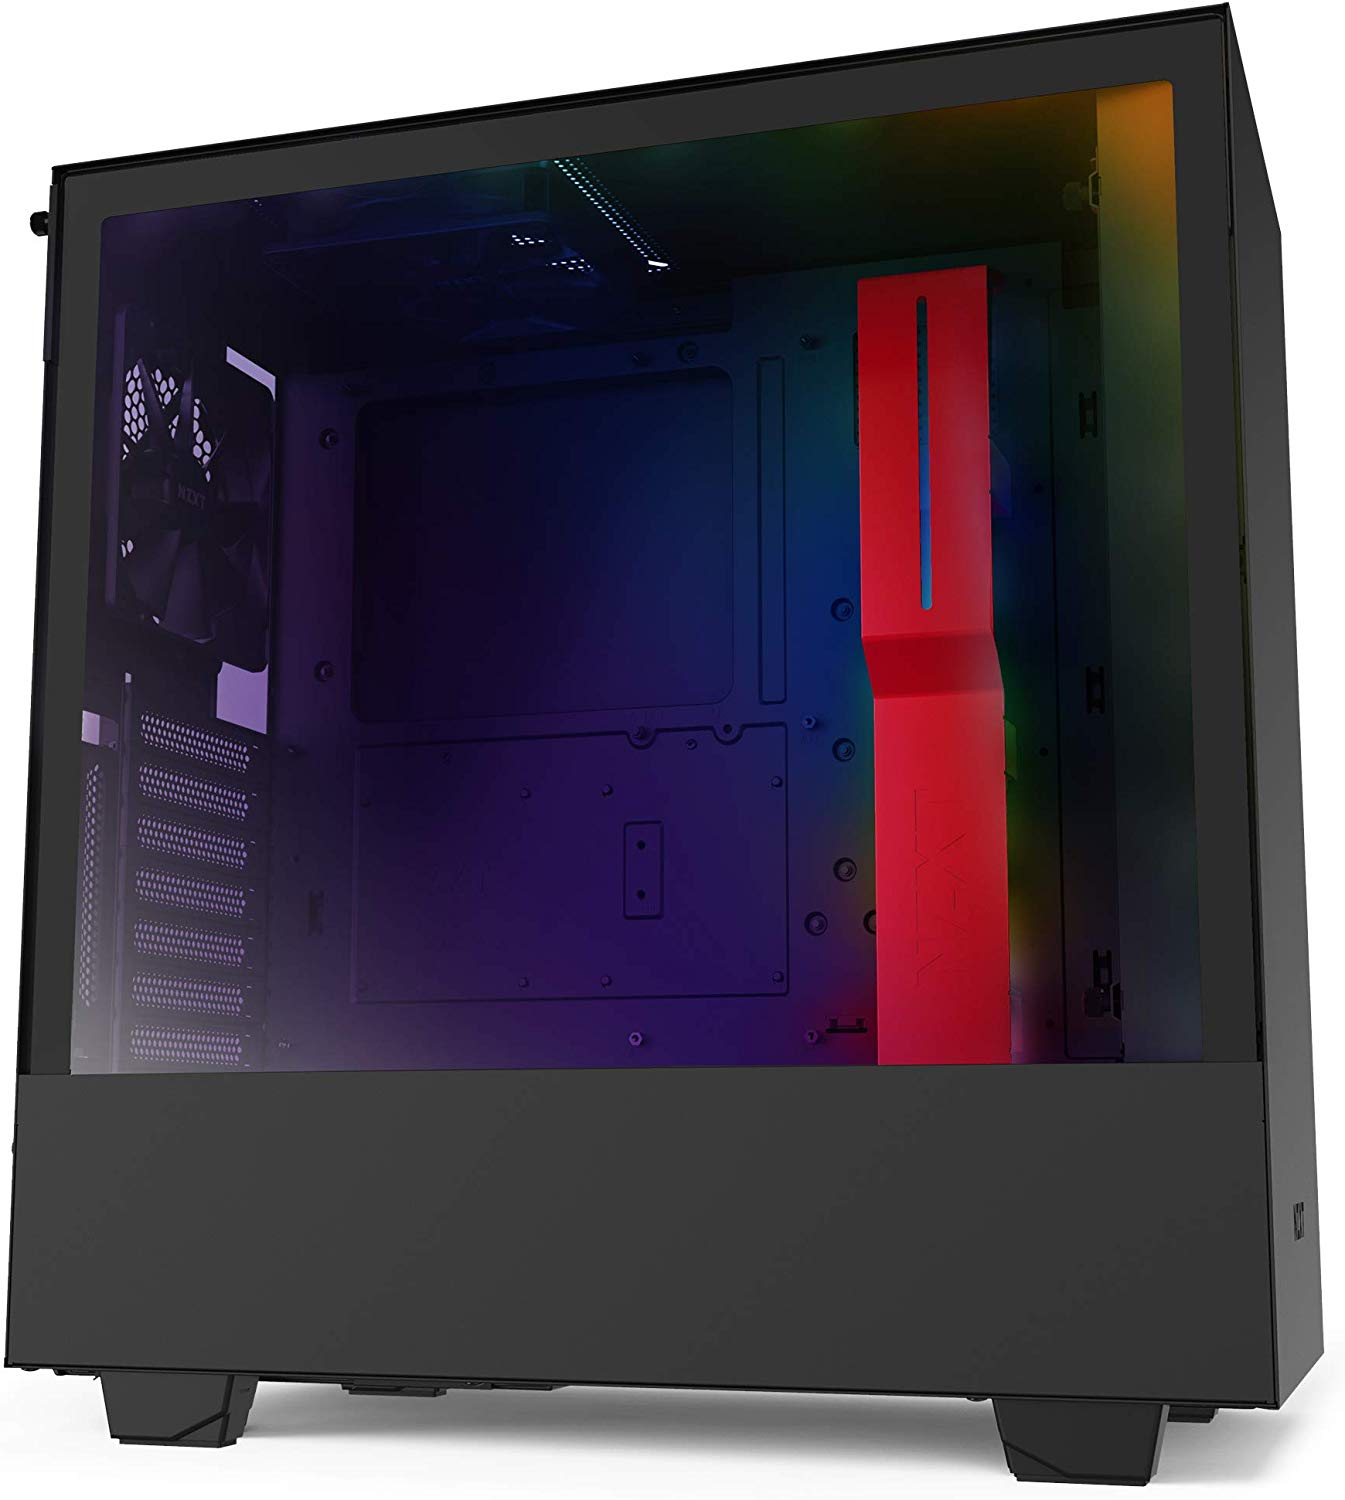 NZXT H510i - Compact ATX Mid-Tower PC Gaming Case